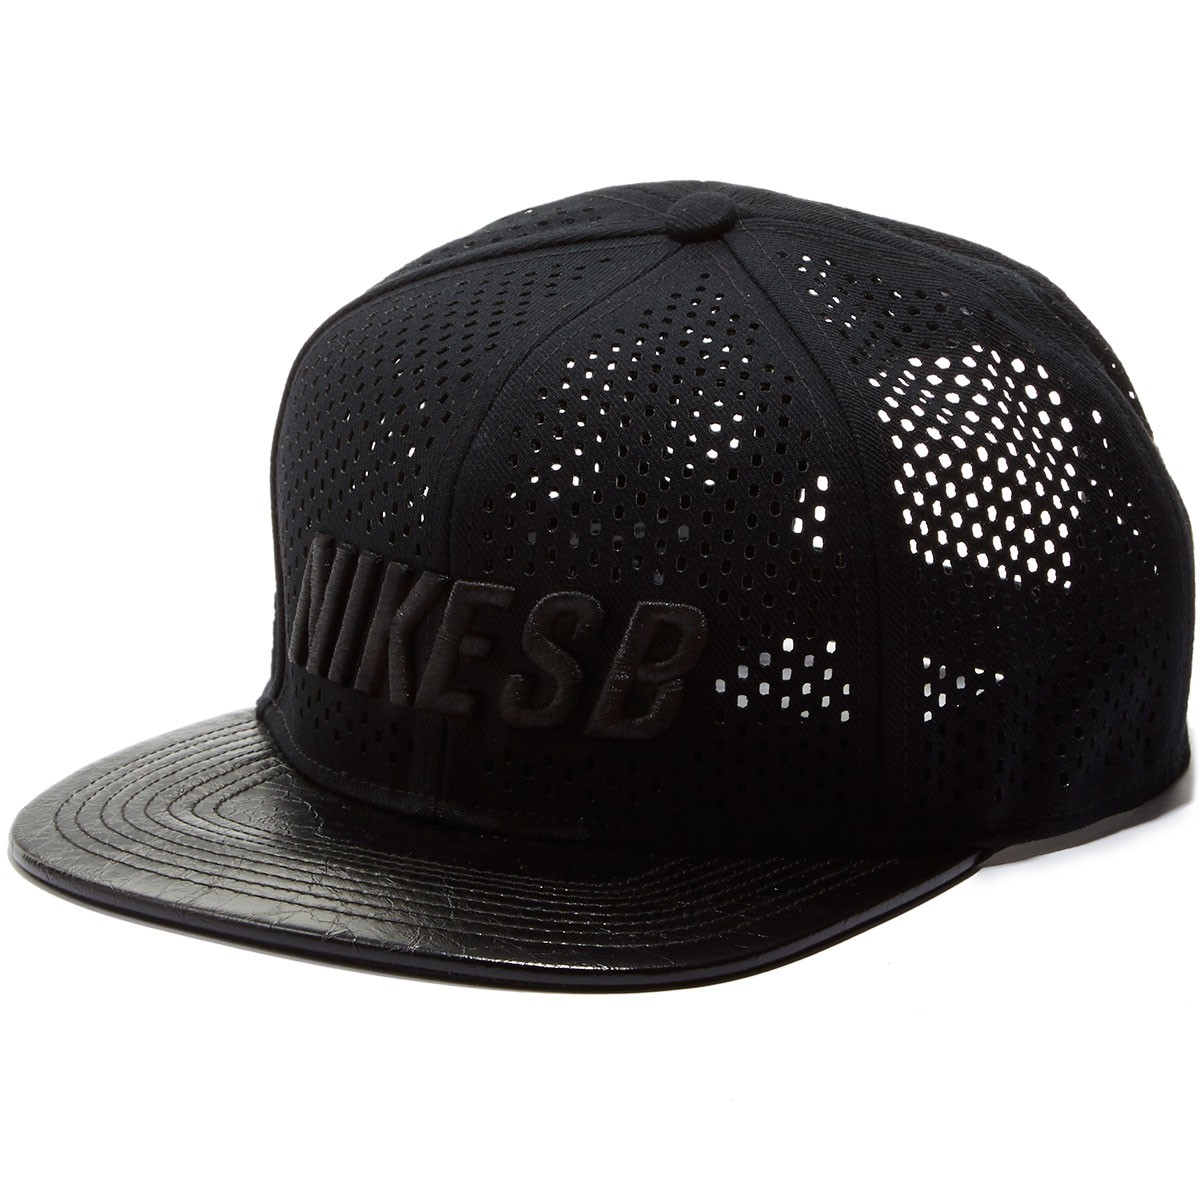 f0976085707 Nike SB S+ Road Performance Trucker Hat - Black